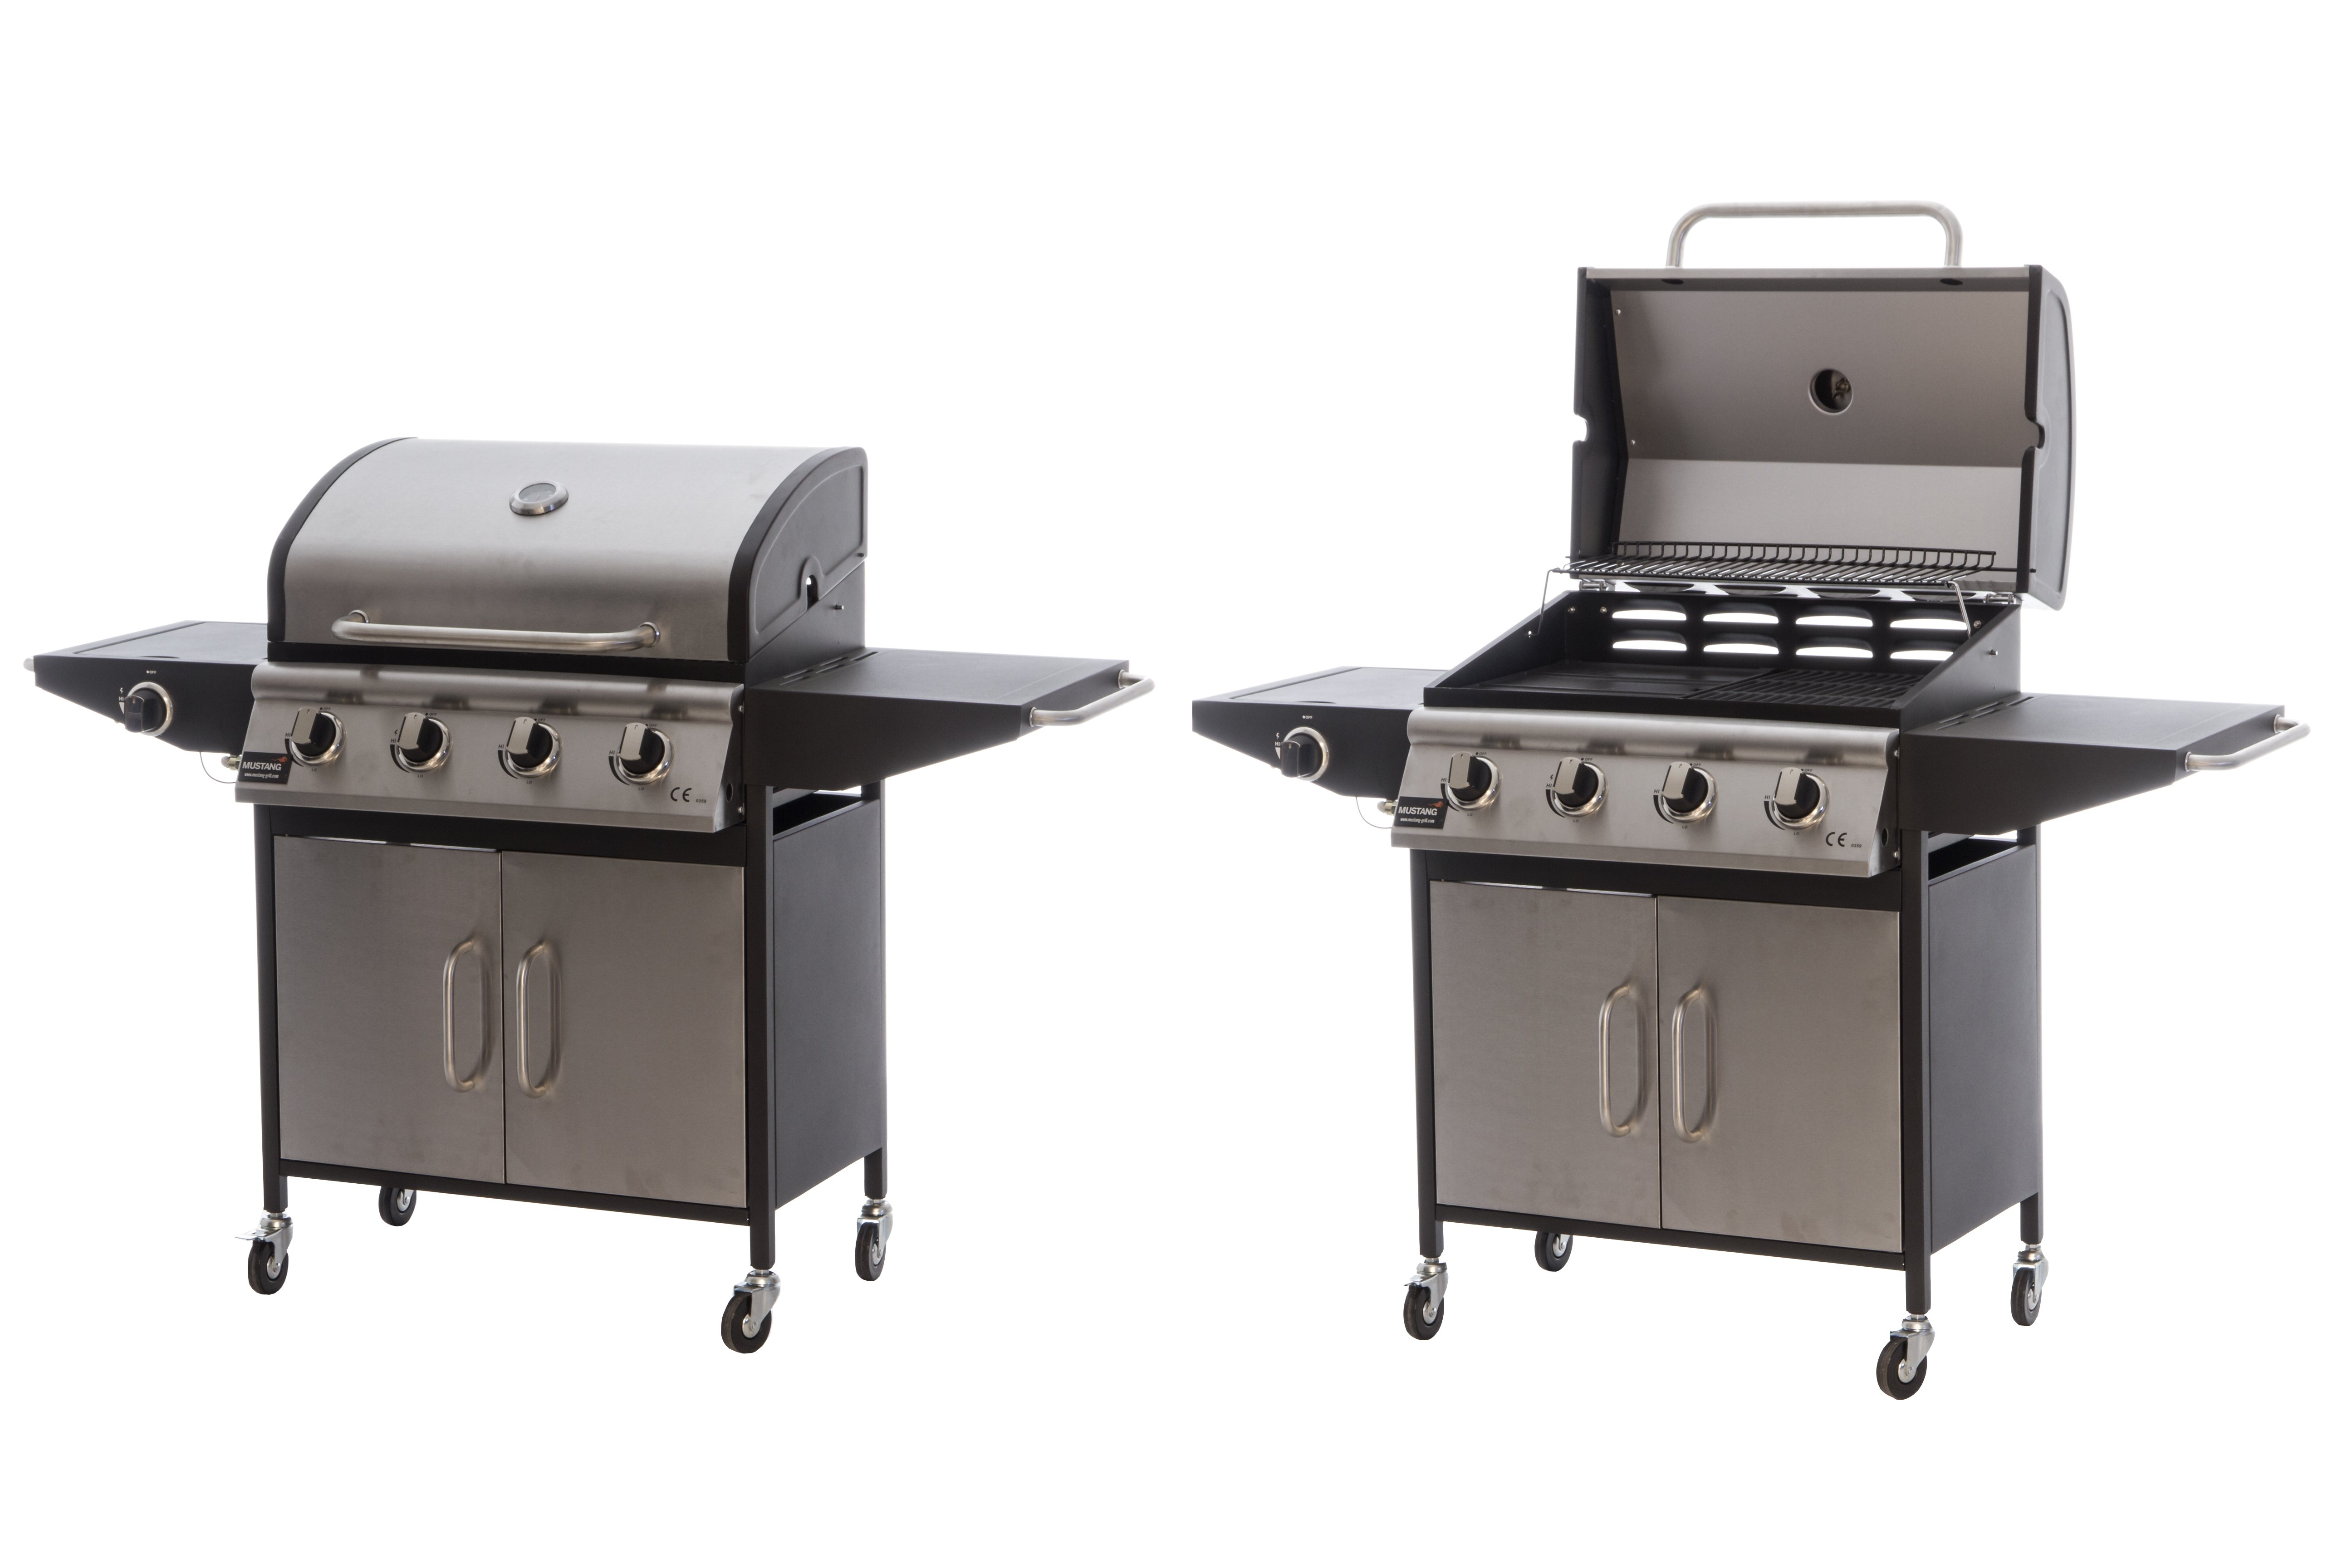 Gaasigrill Mustang Tennesee 4+1